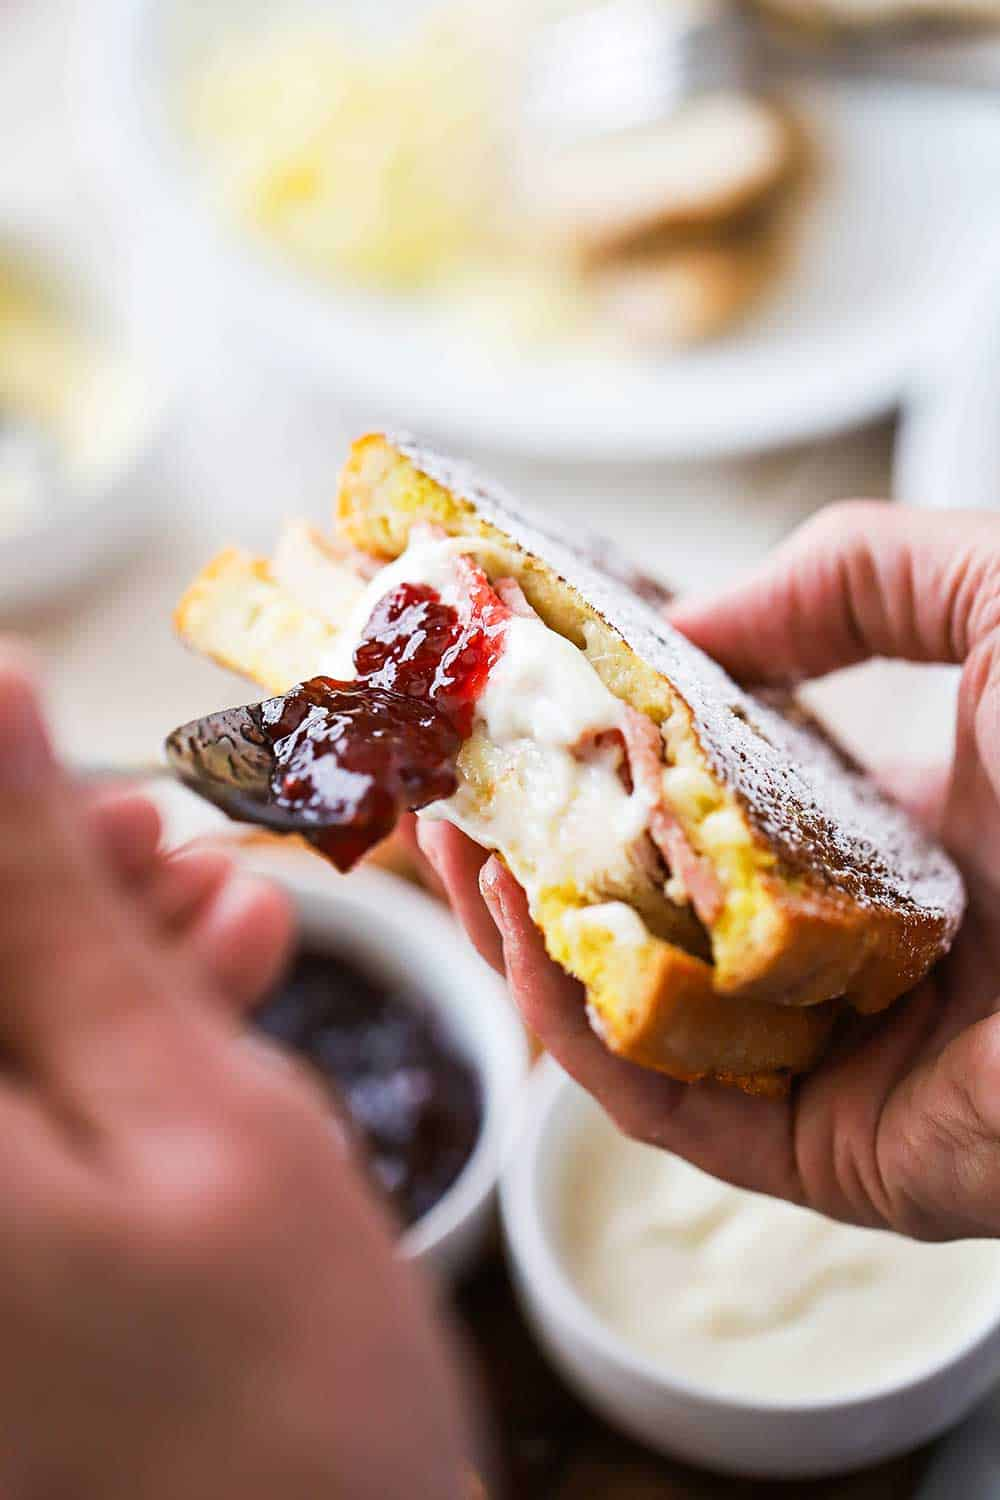 A person using a spoon to smear on preserves onto a Monte Cristo sandwich.